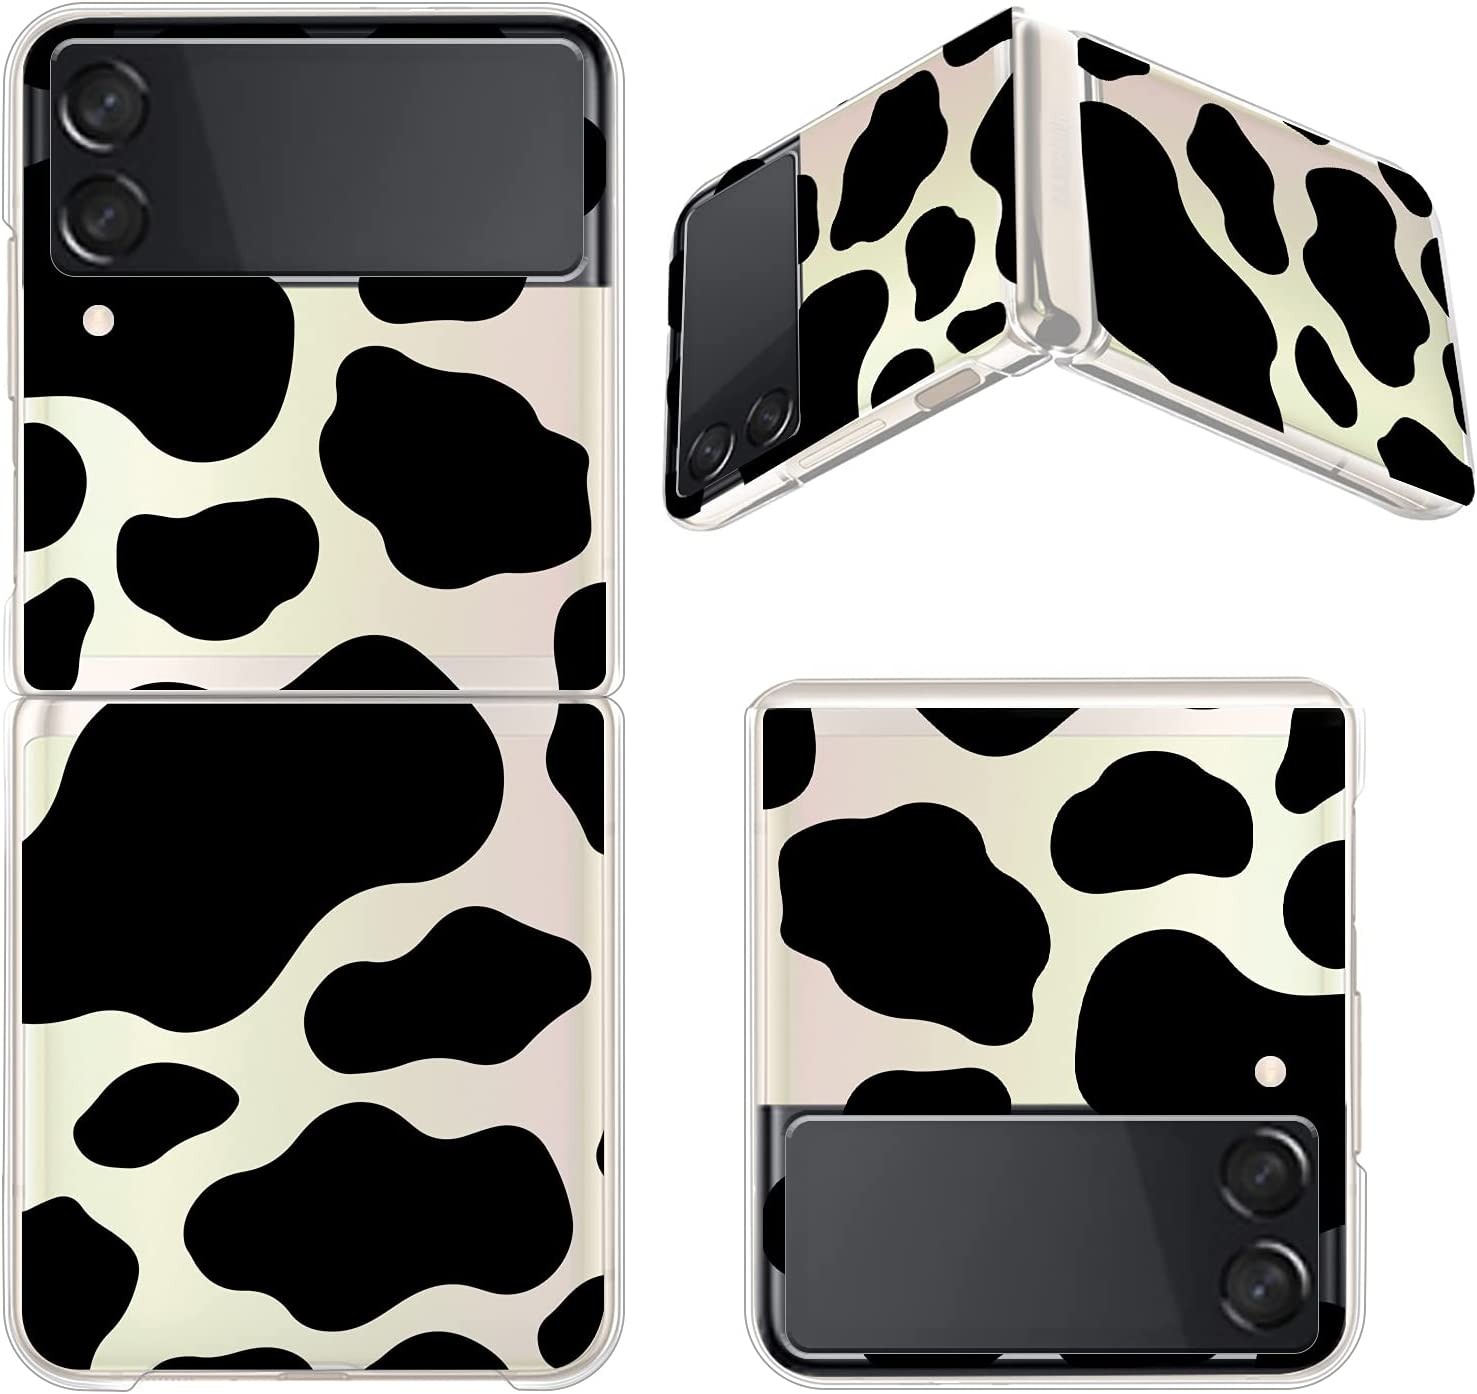 Gukalong Clear Case for Samsung Galaxy Z Flip 3 5G Full Body Shockproof Protective Hard Bumper Folding Cover Slim Thin Cow Print Animal Design Wireless Charging Case for Galaxy Z Flip 3 2021